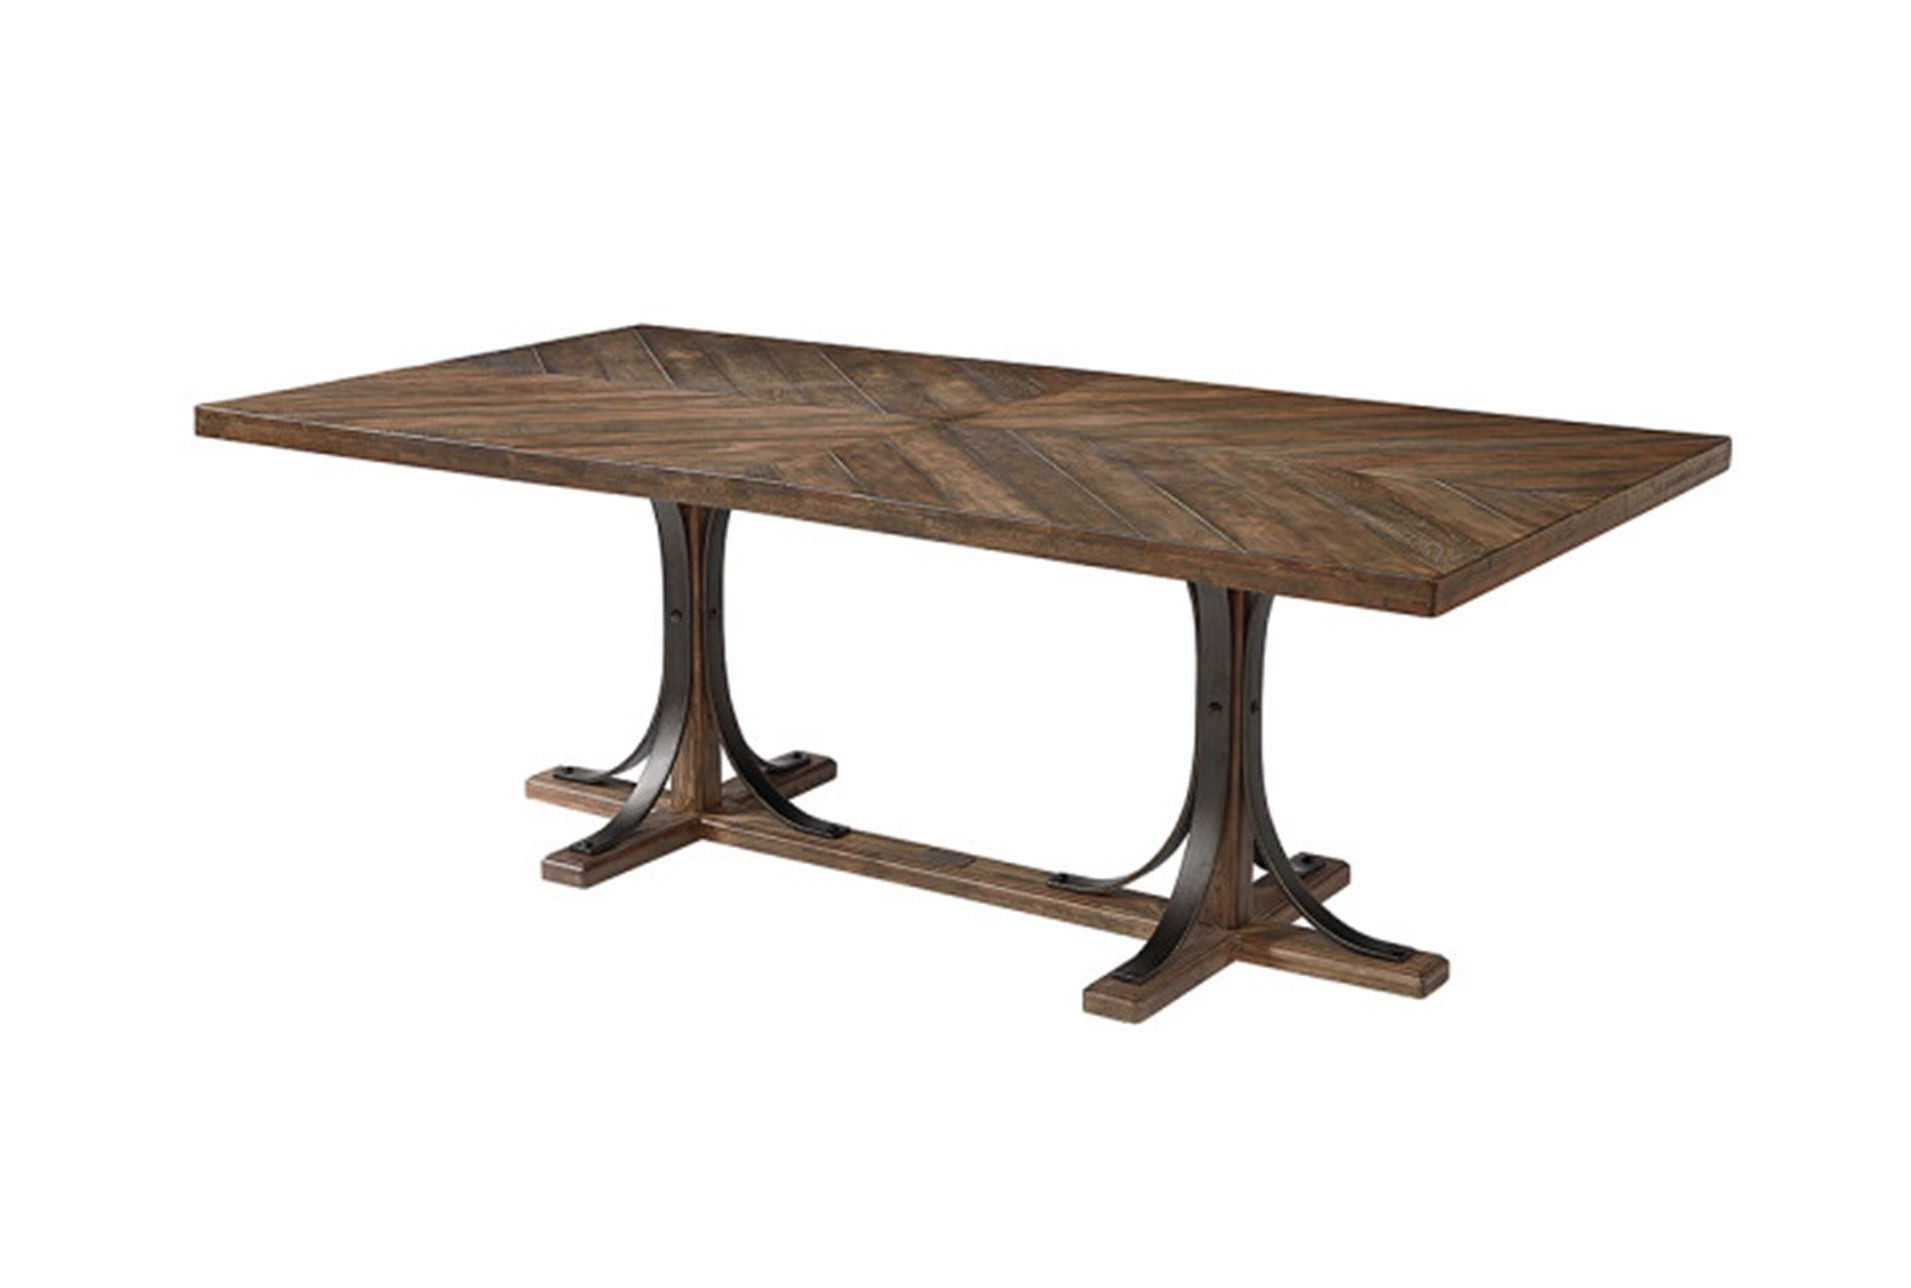 Magnolia Home Ellipse Cocktail Tables By Joanna Gaines Intended For Widely Used Magnolia Home Shop Floor Dining Table With Iron Trestlejoanna (View 9 of 20)